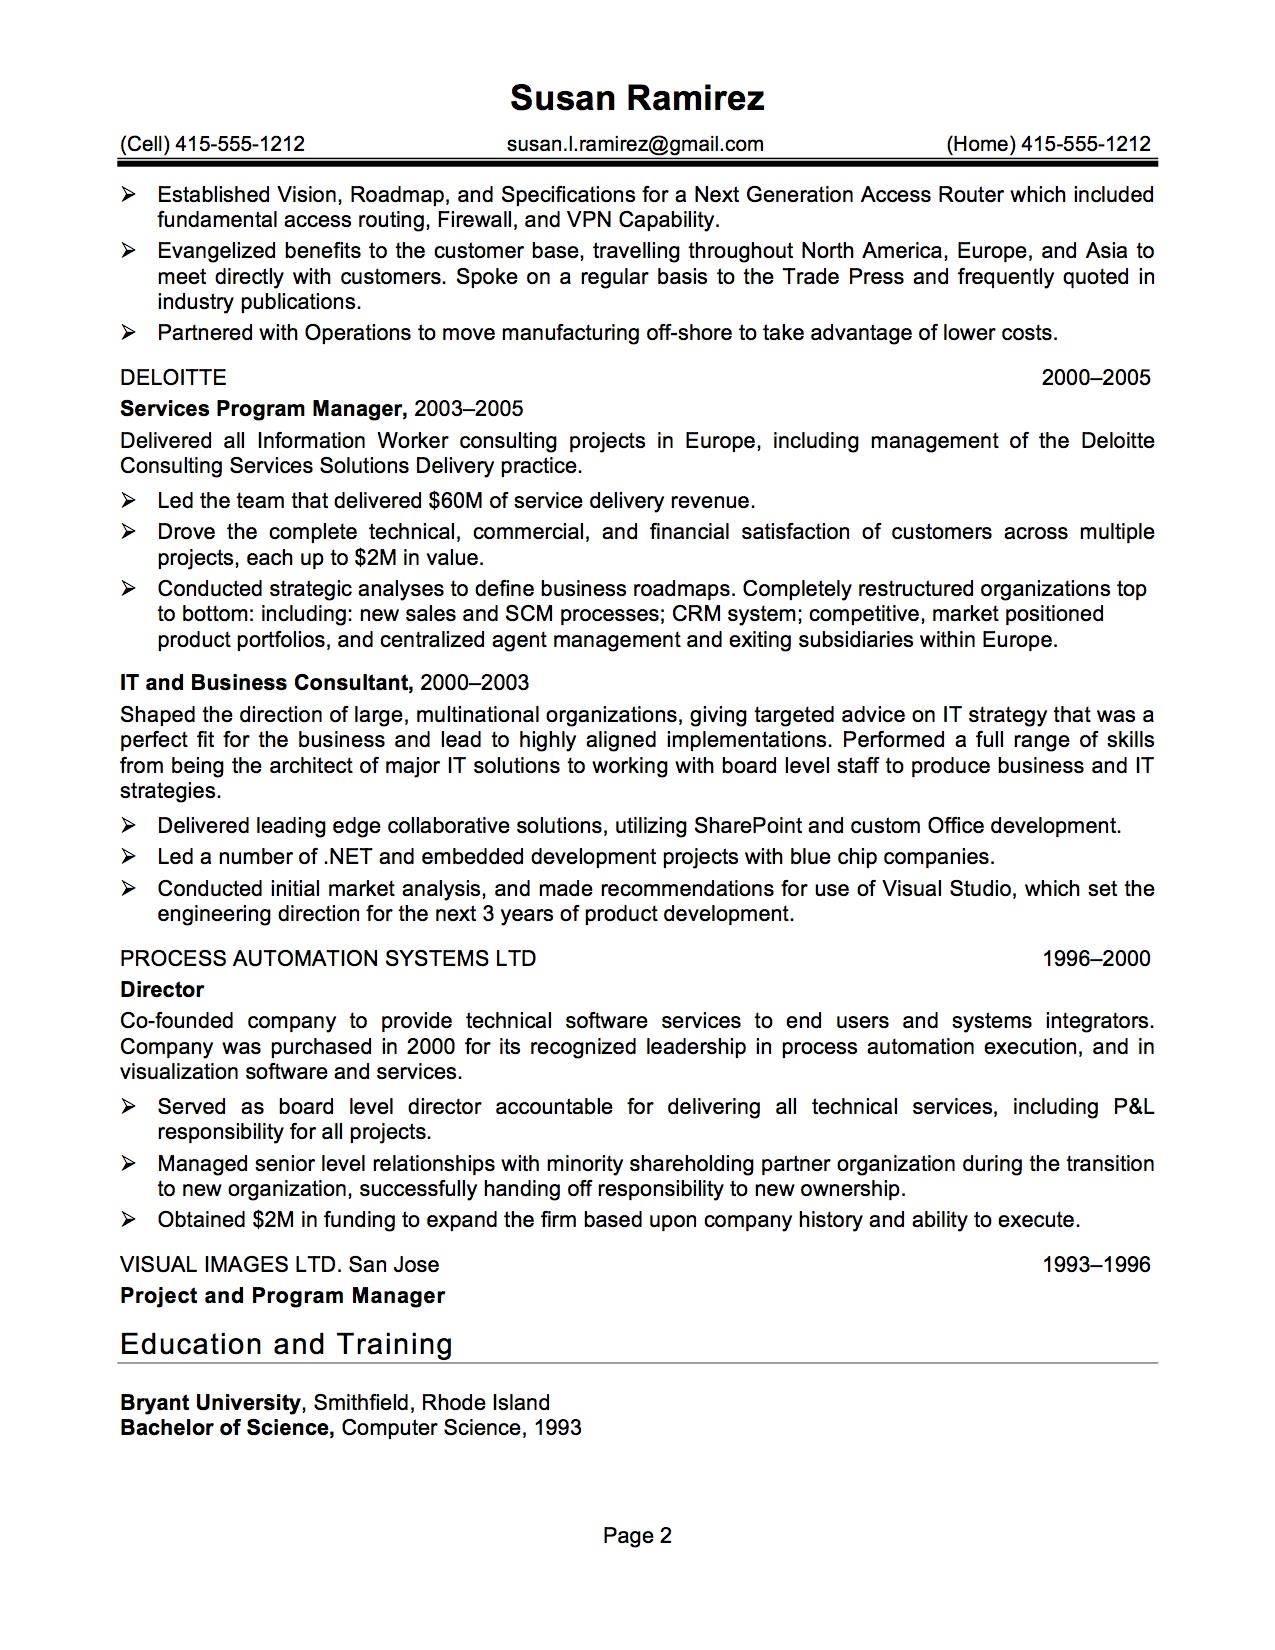 Plant Foreman Resume – Piping Supervisor Resume